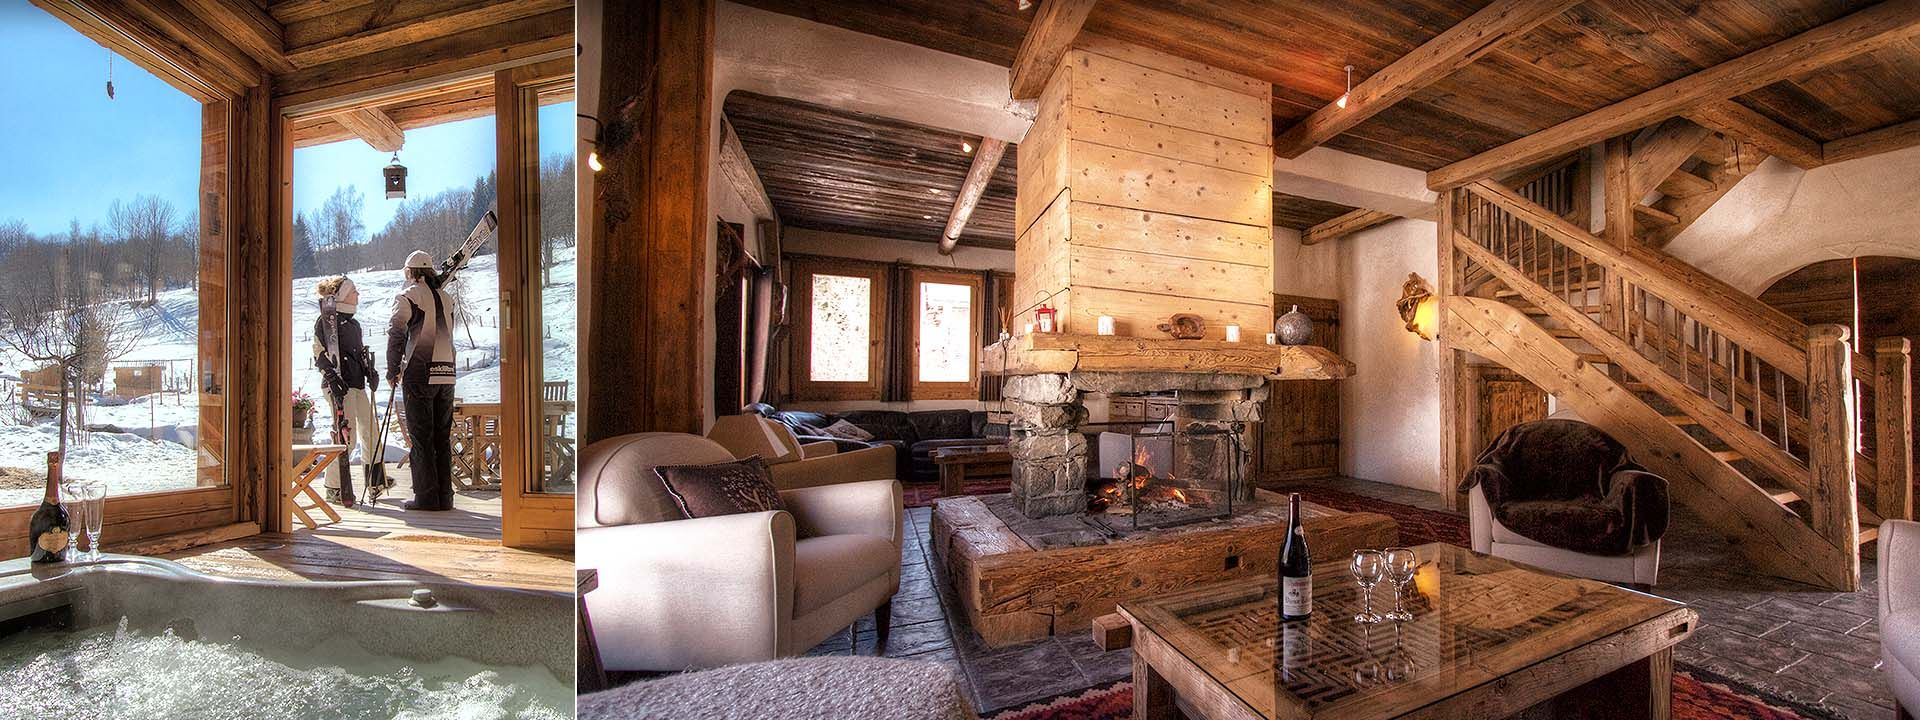 Les chalets du hameau for Photo en interieur